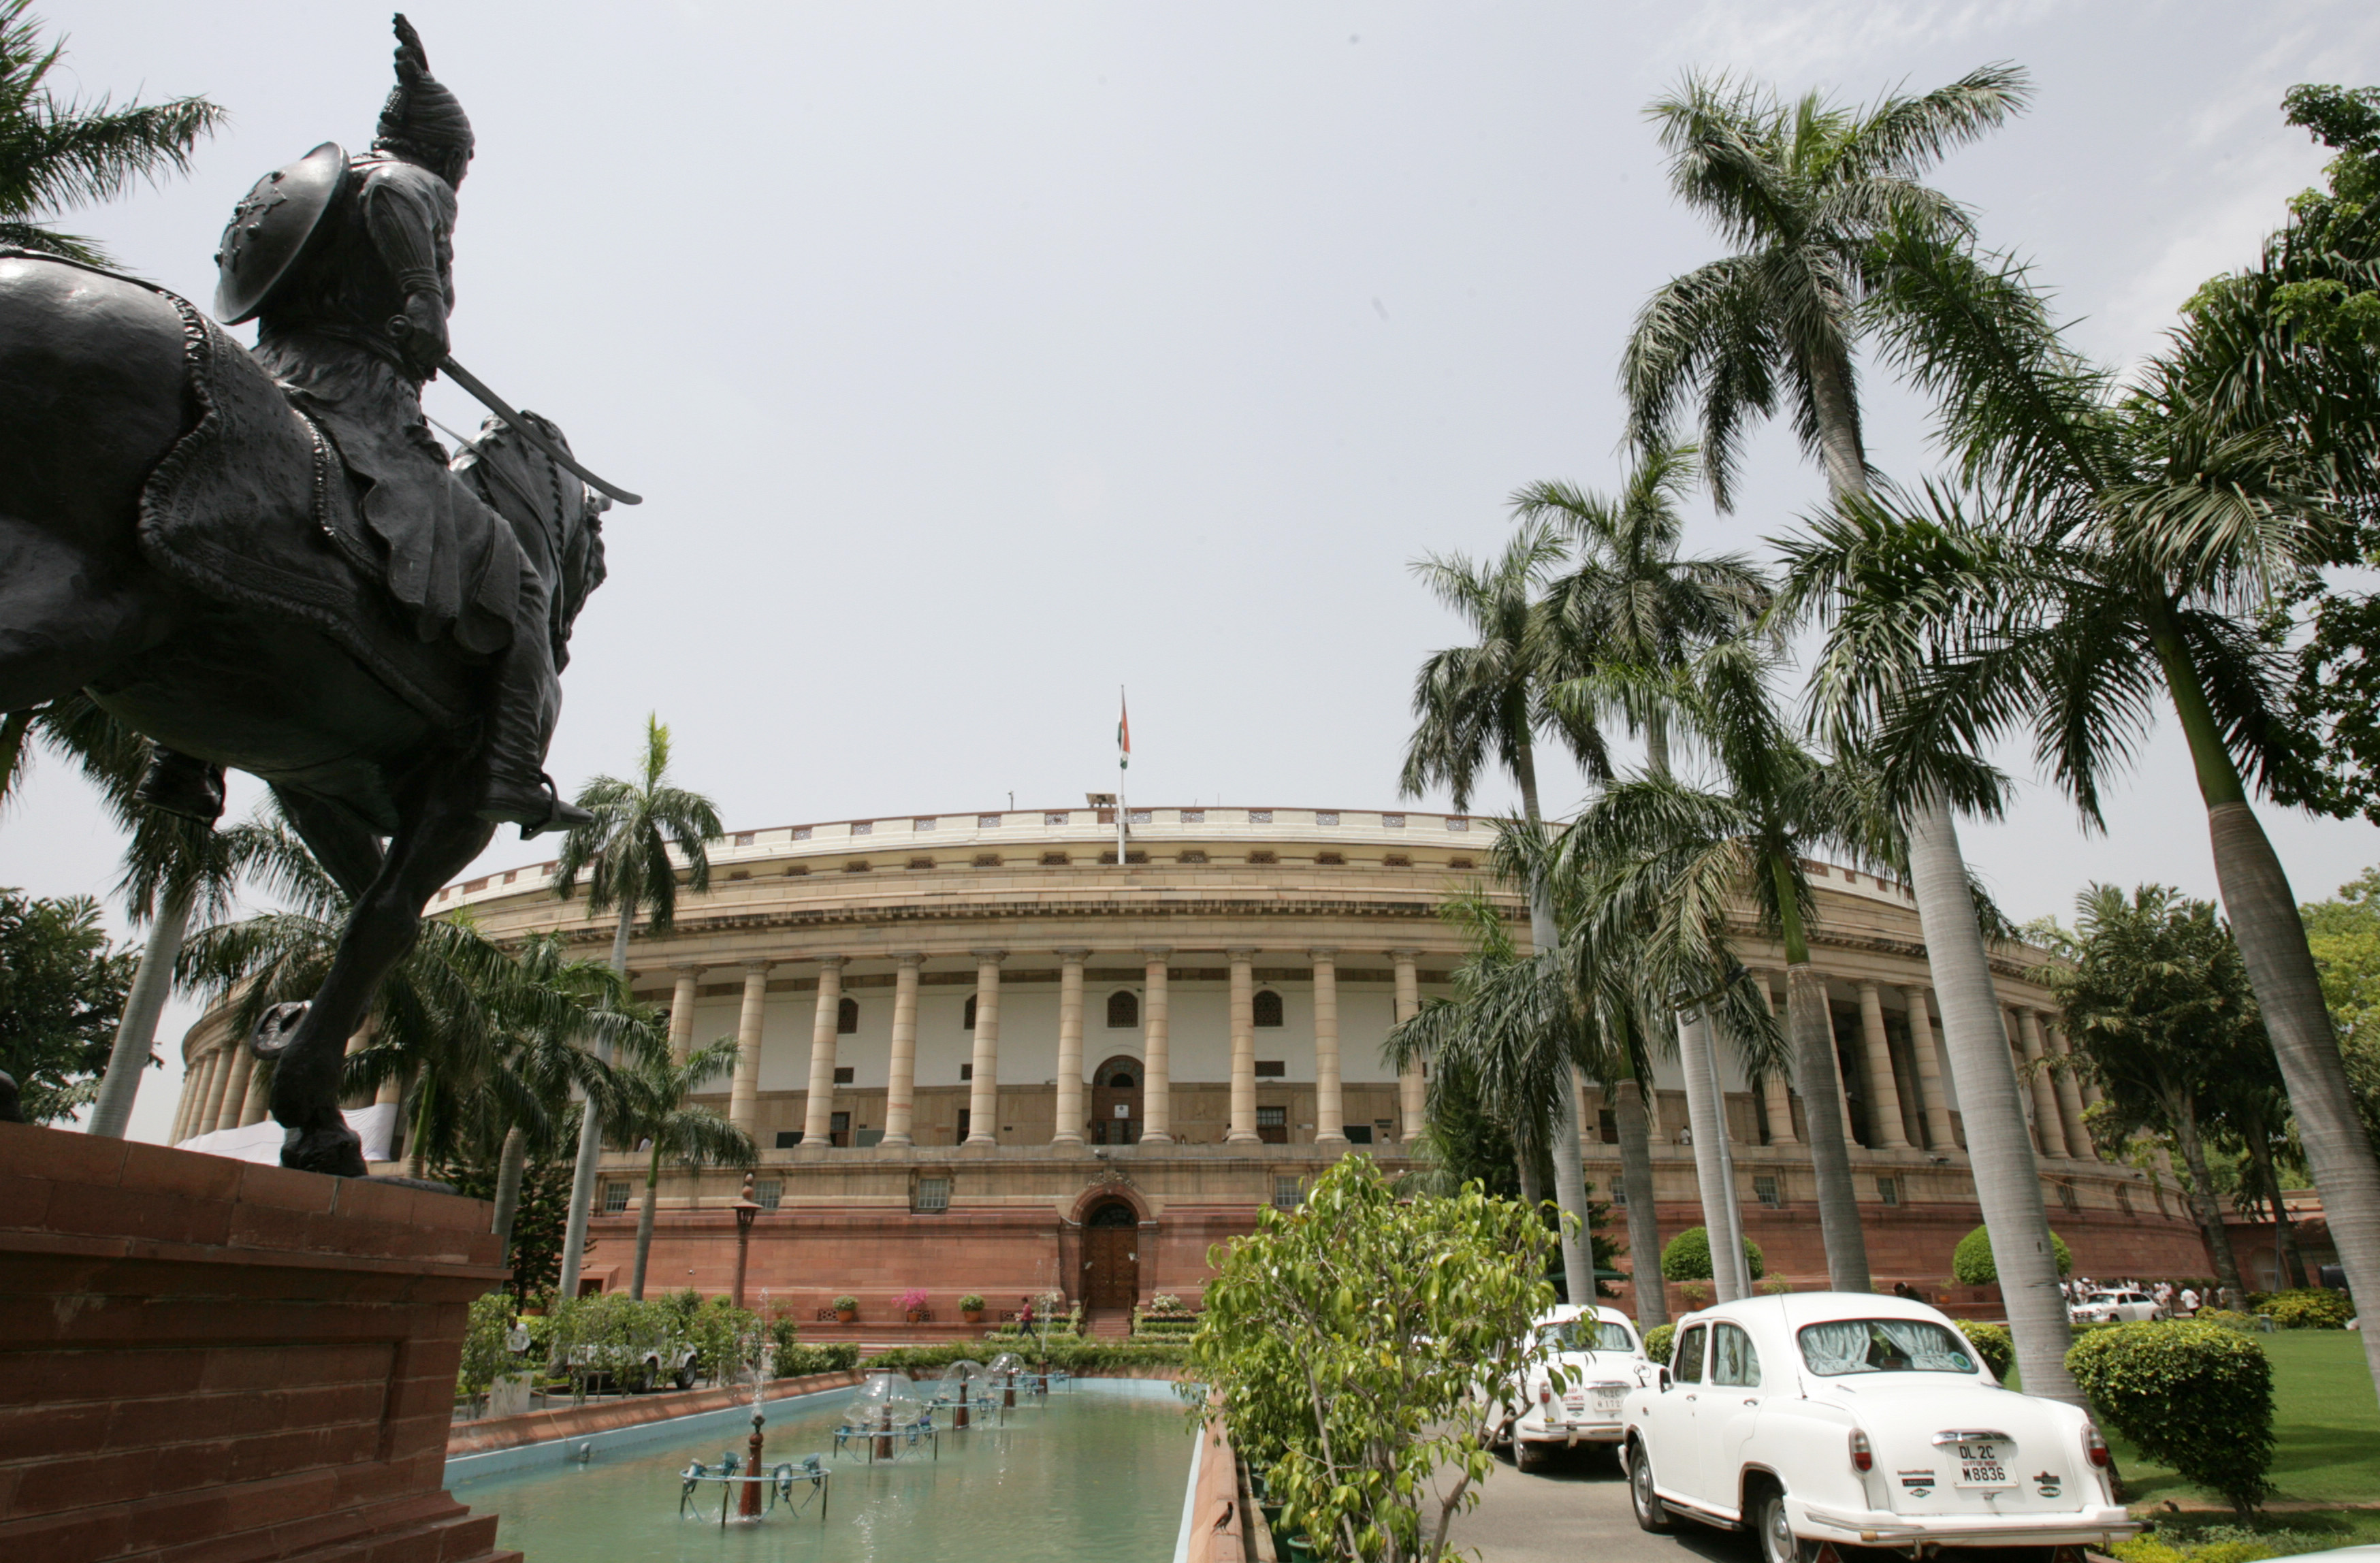 Govt may reconvene Parliament to pass GST Bill